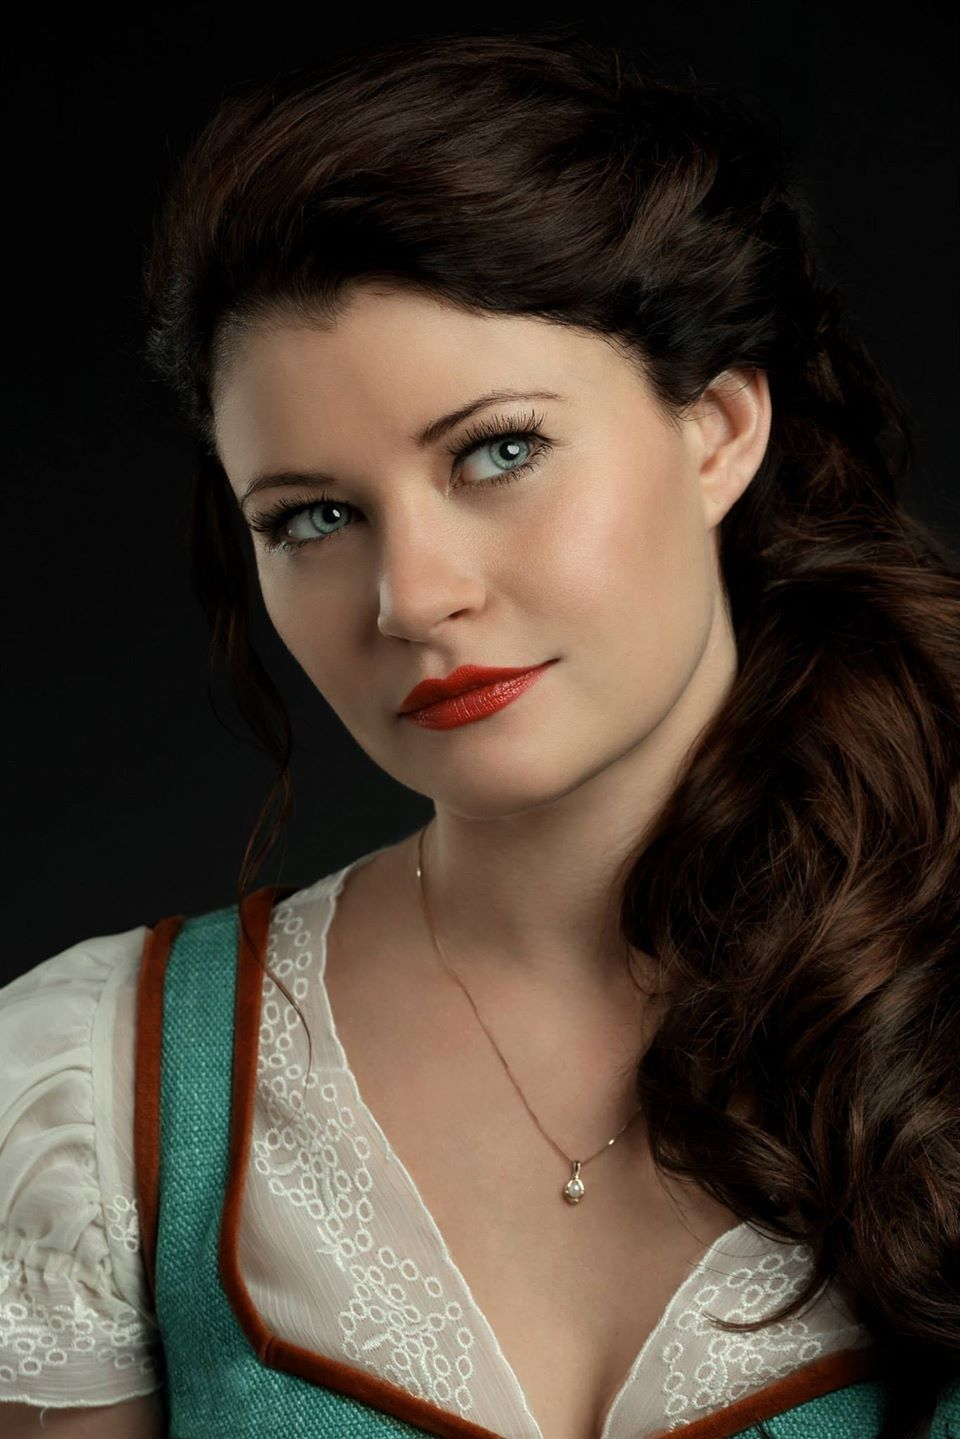 Pin By Angel Fielder On Once Upon A Time With Images Emilie De